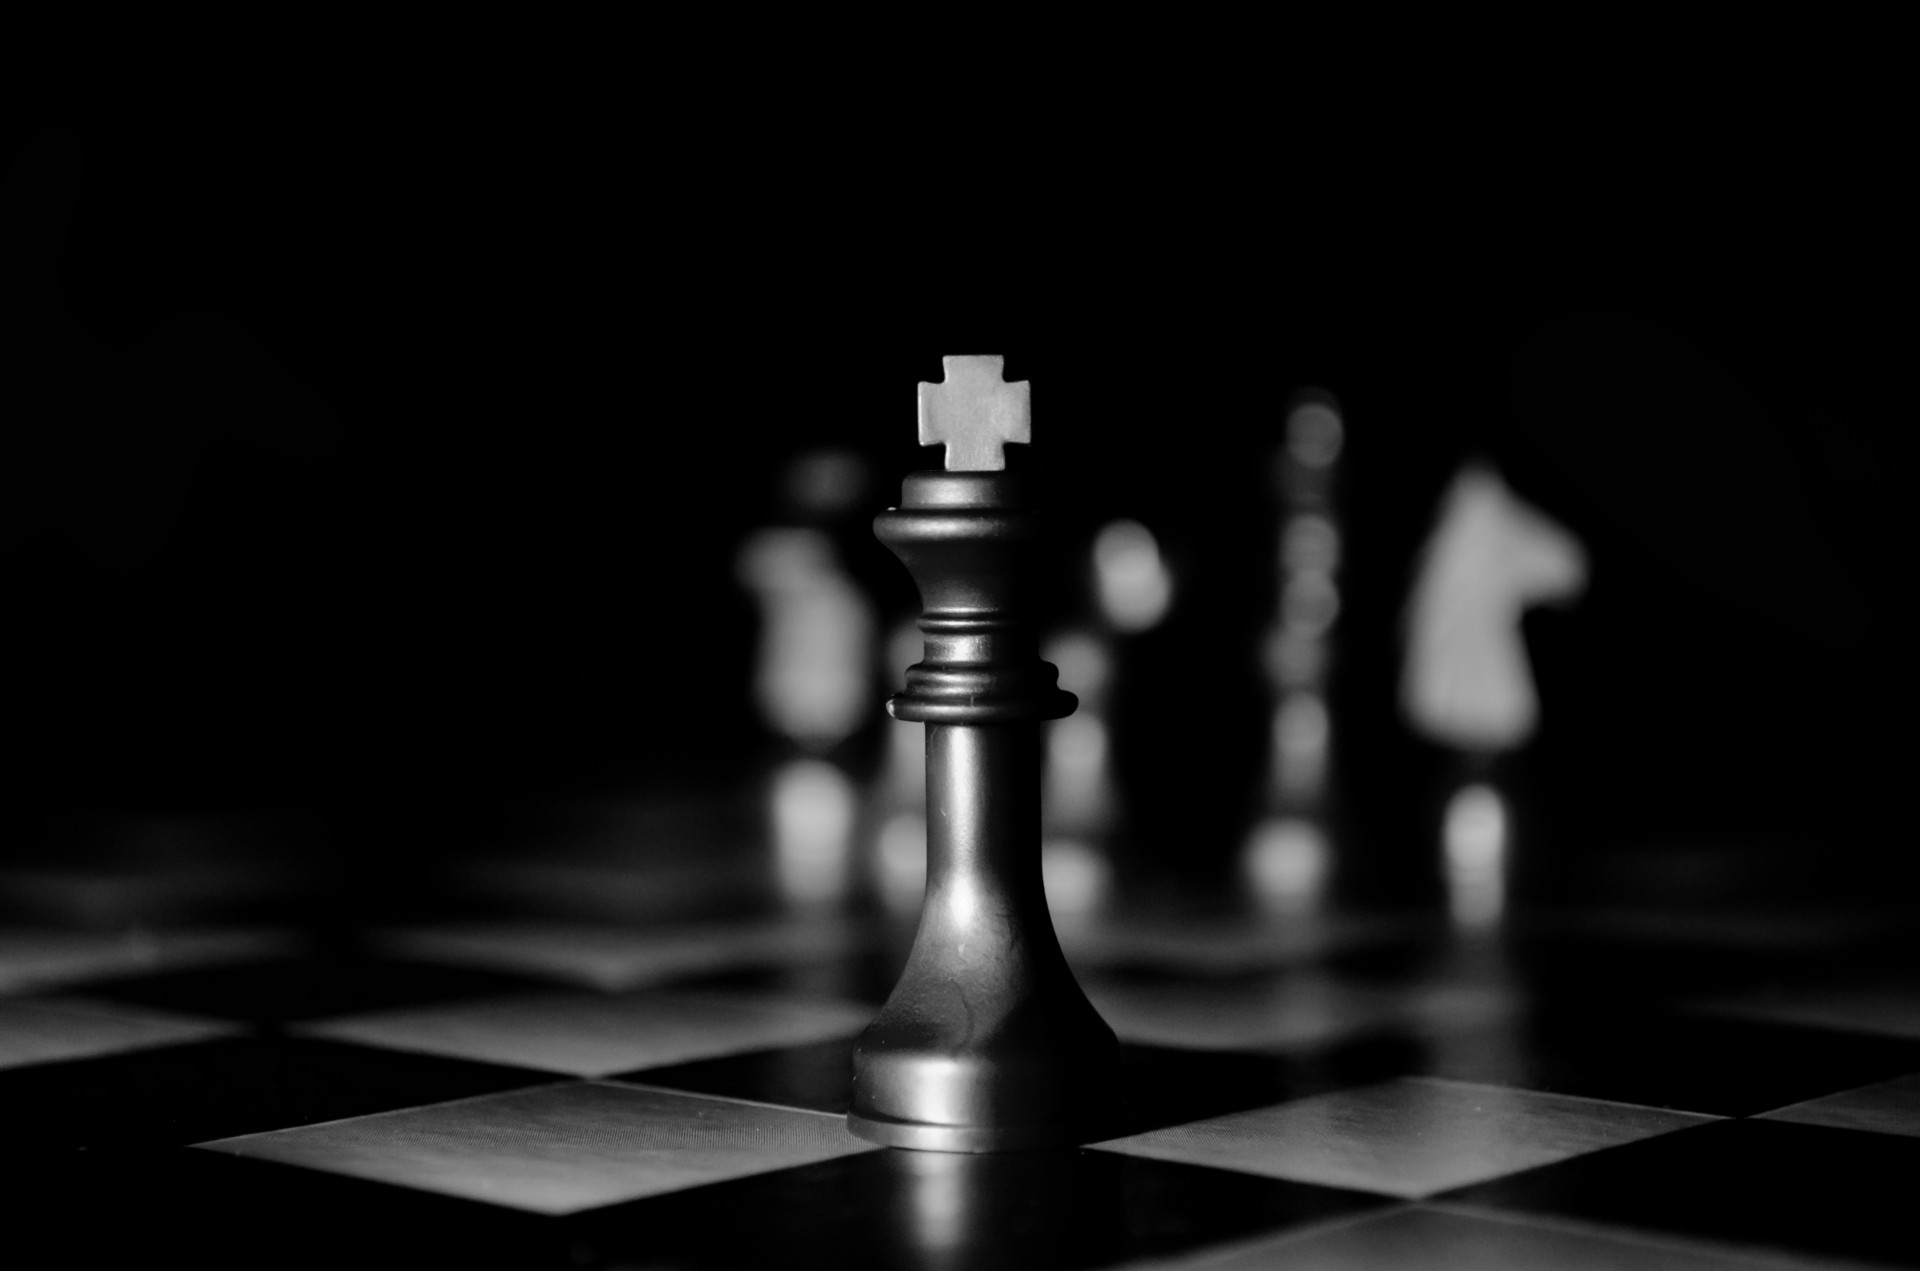 Black King Chess Piece Wallpapers Top Free Black King Chess Piece Backgrounds Wallpaperaccess